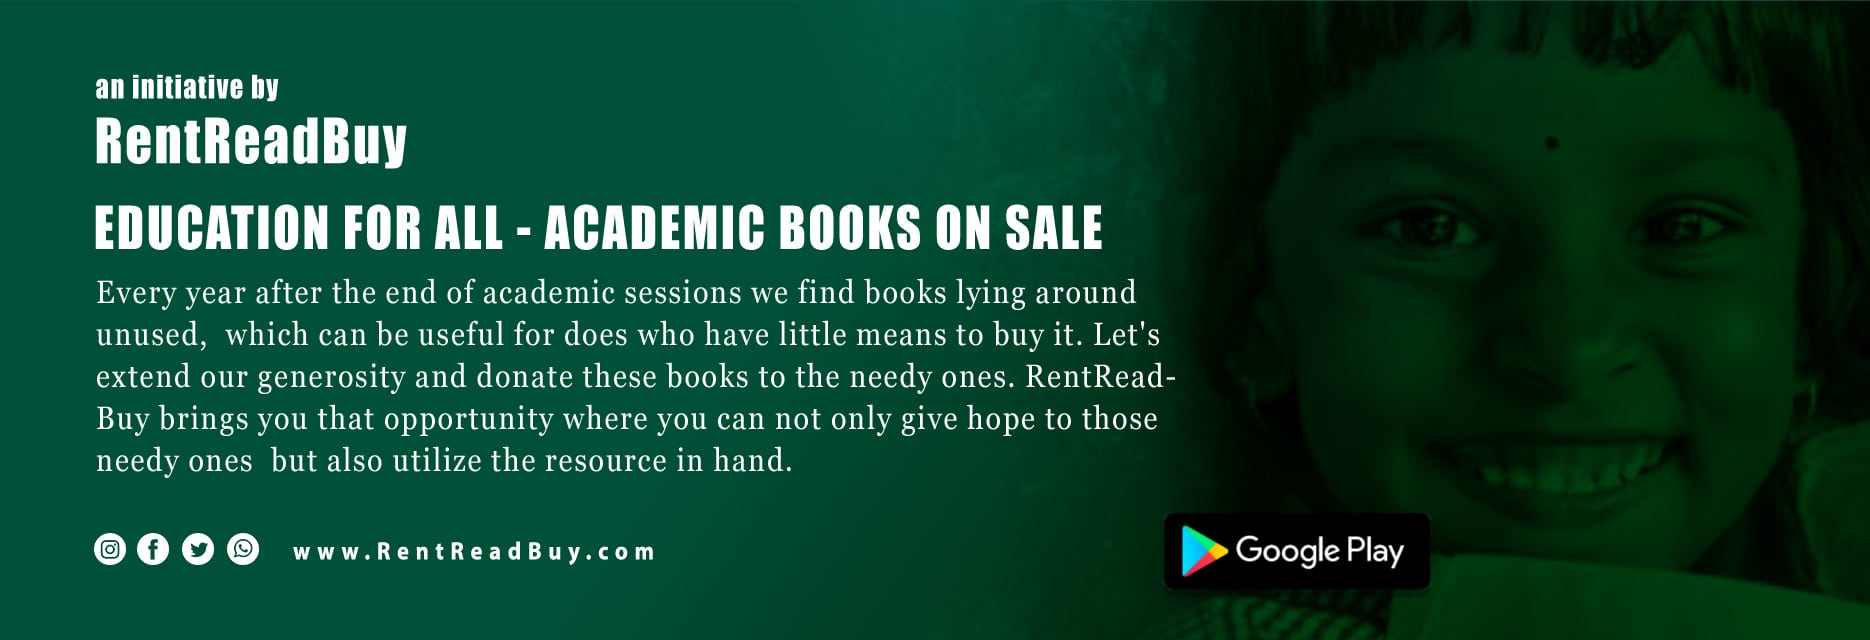 Education For All - Academic Books on Sale